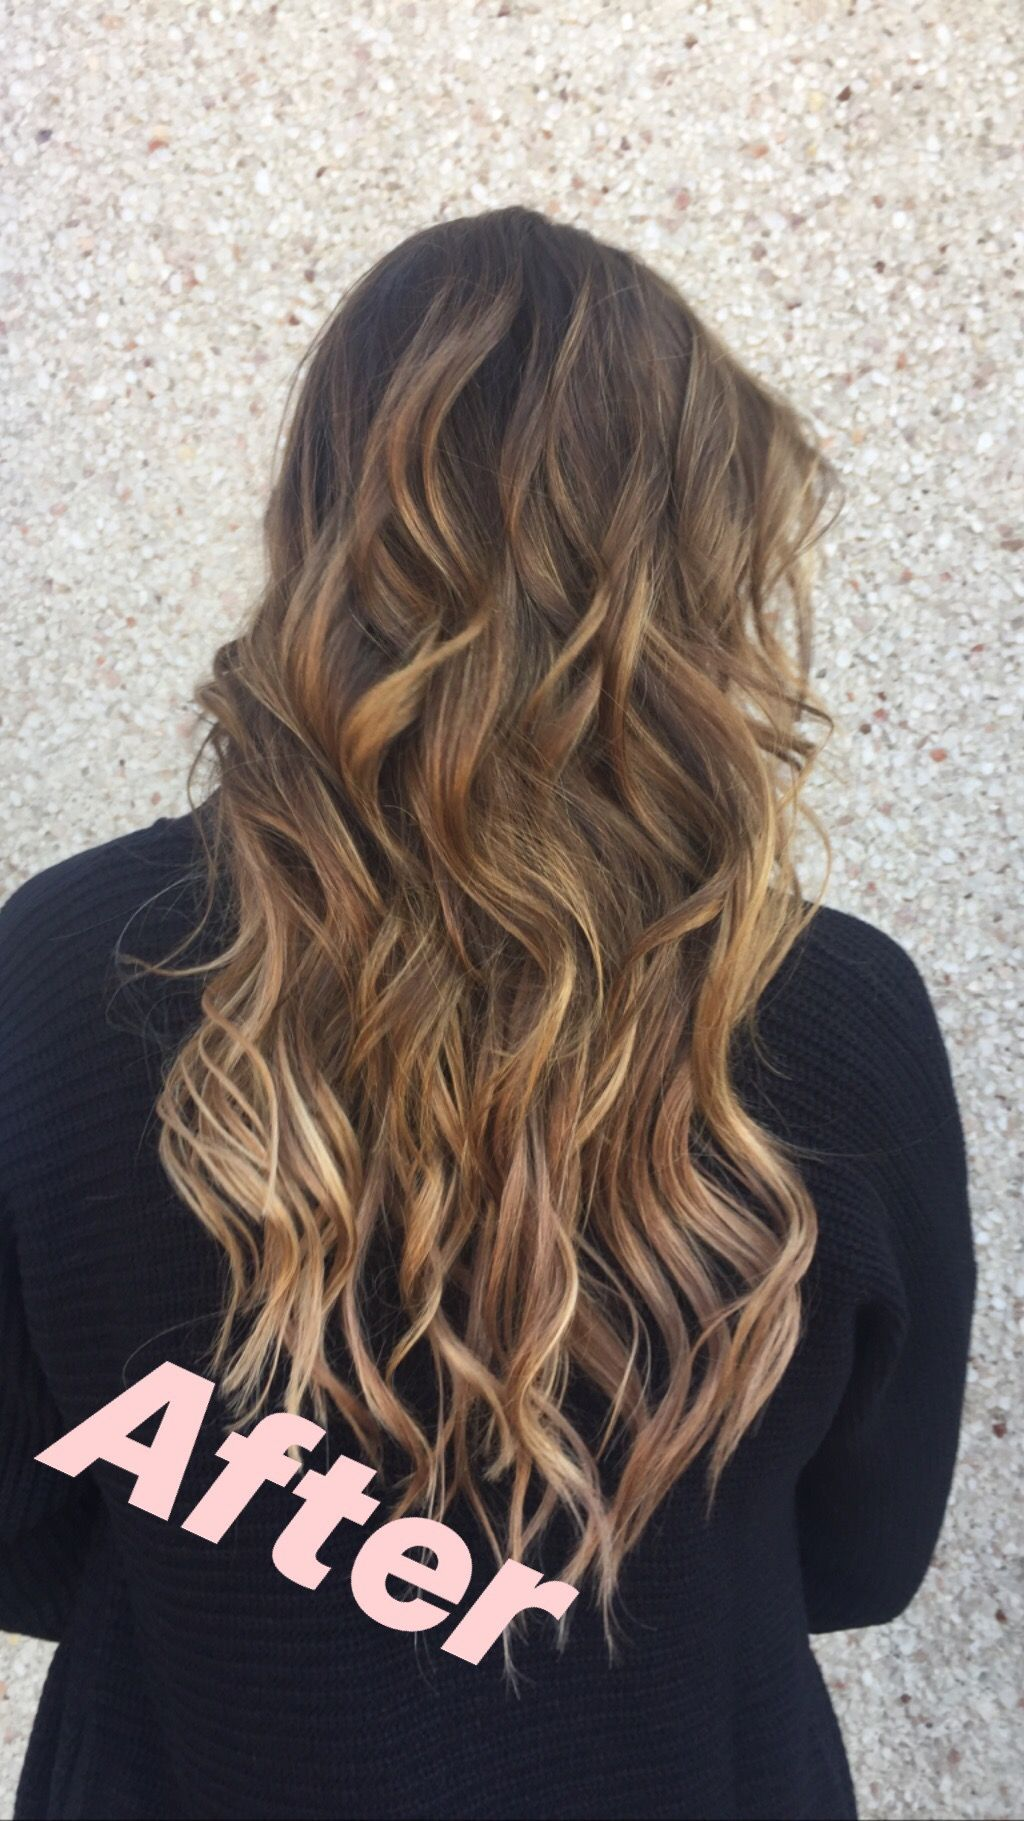 Pin by Melissa Kern on Cosmetology School Hair by Hannah